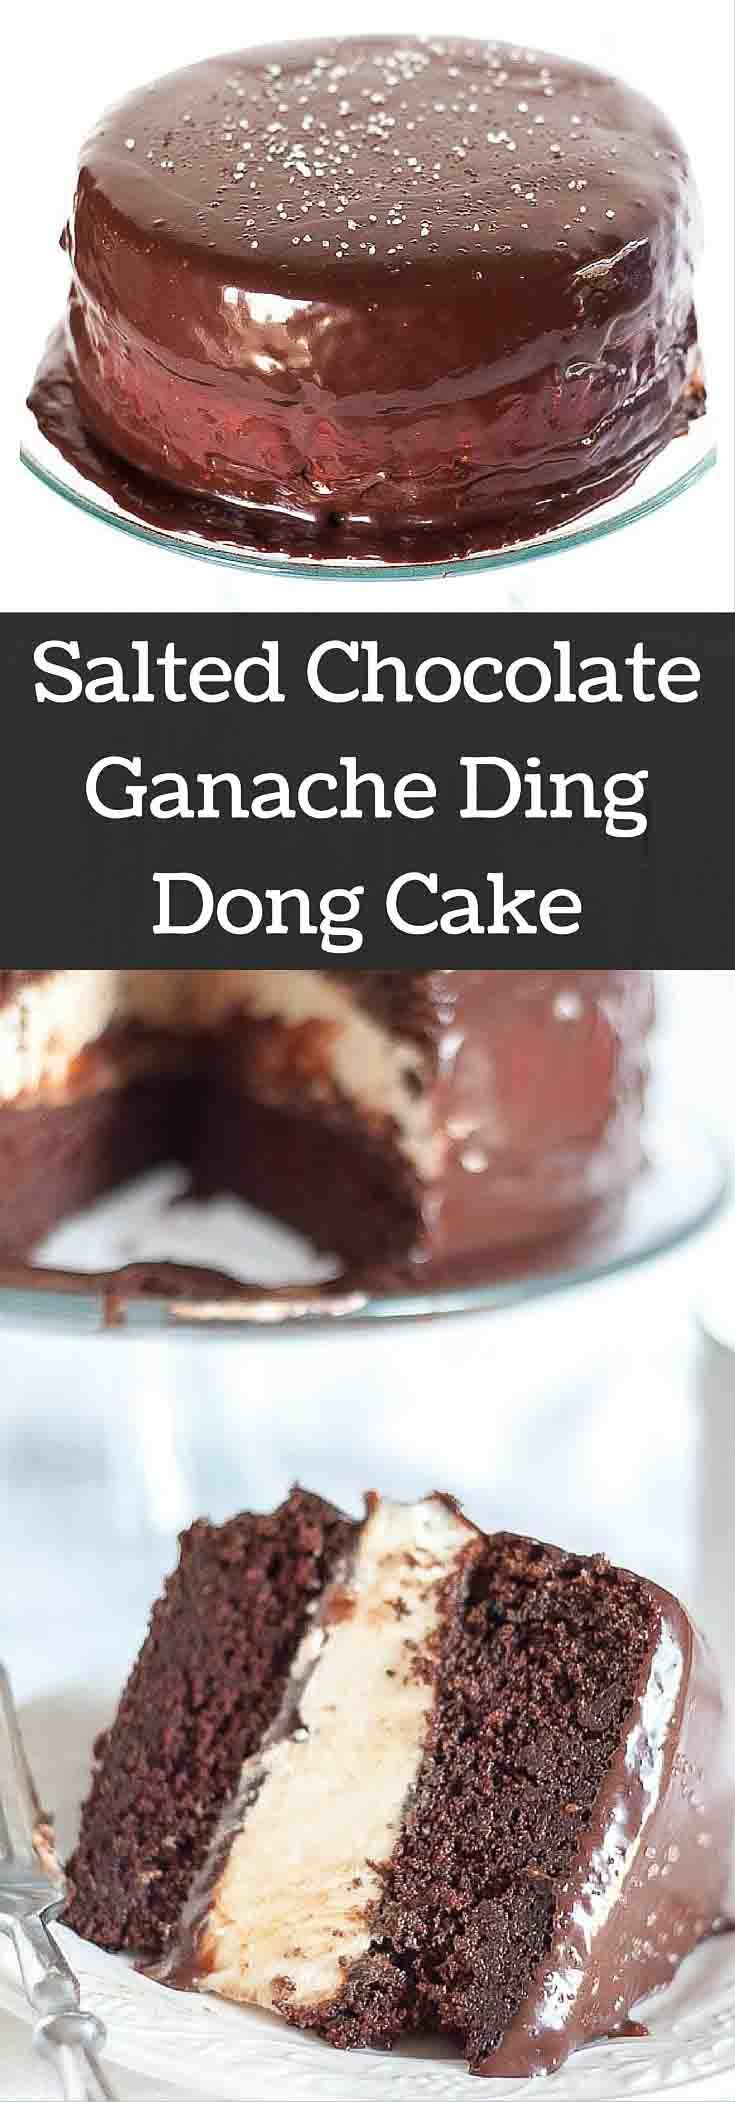 This Salted Chocolate Ganache Ding Dong Cake recipe will make you weep with tears of bliss. It is a moist chocolate cake, fluffy Ho Ho filling, and ganache drizzled all over. http://www.mamagourmand.com